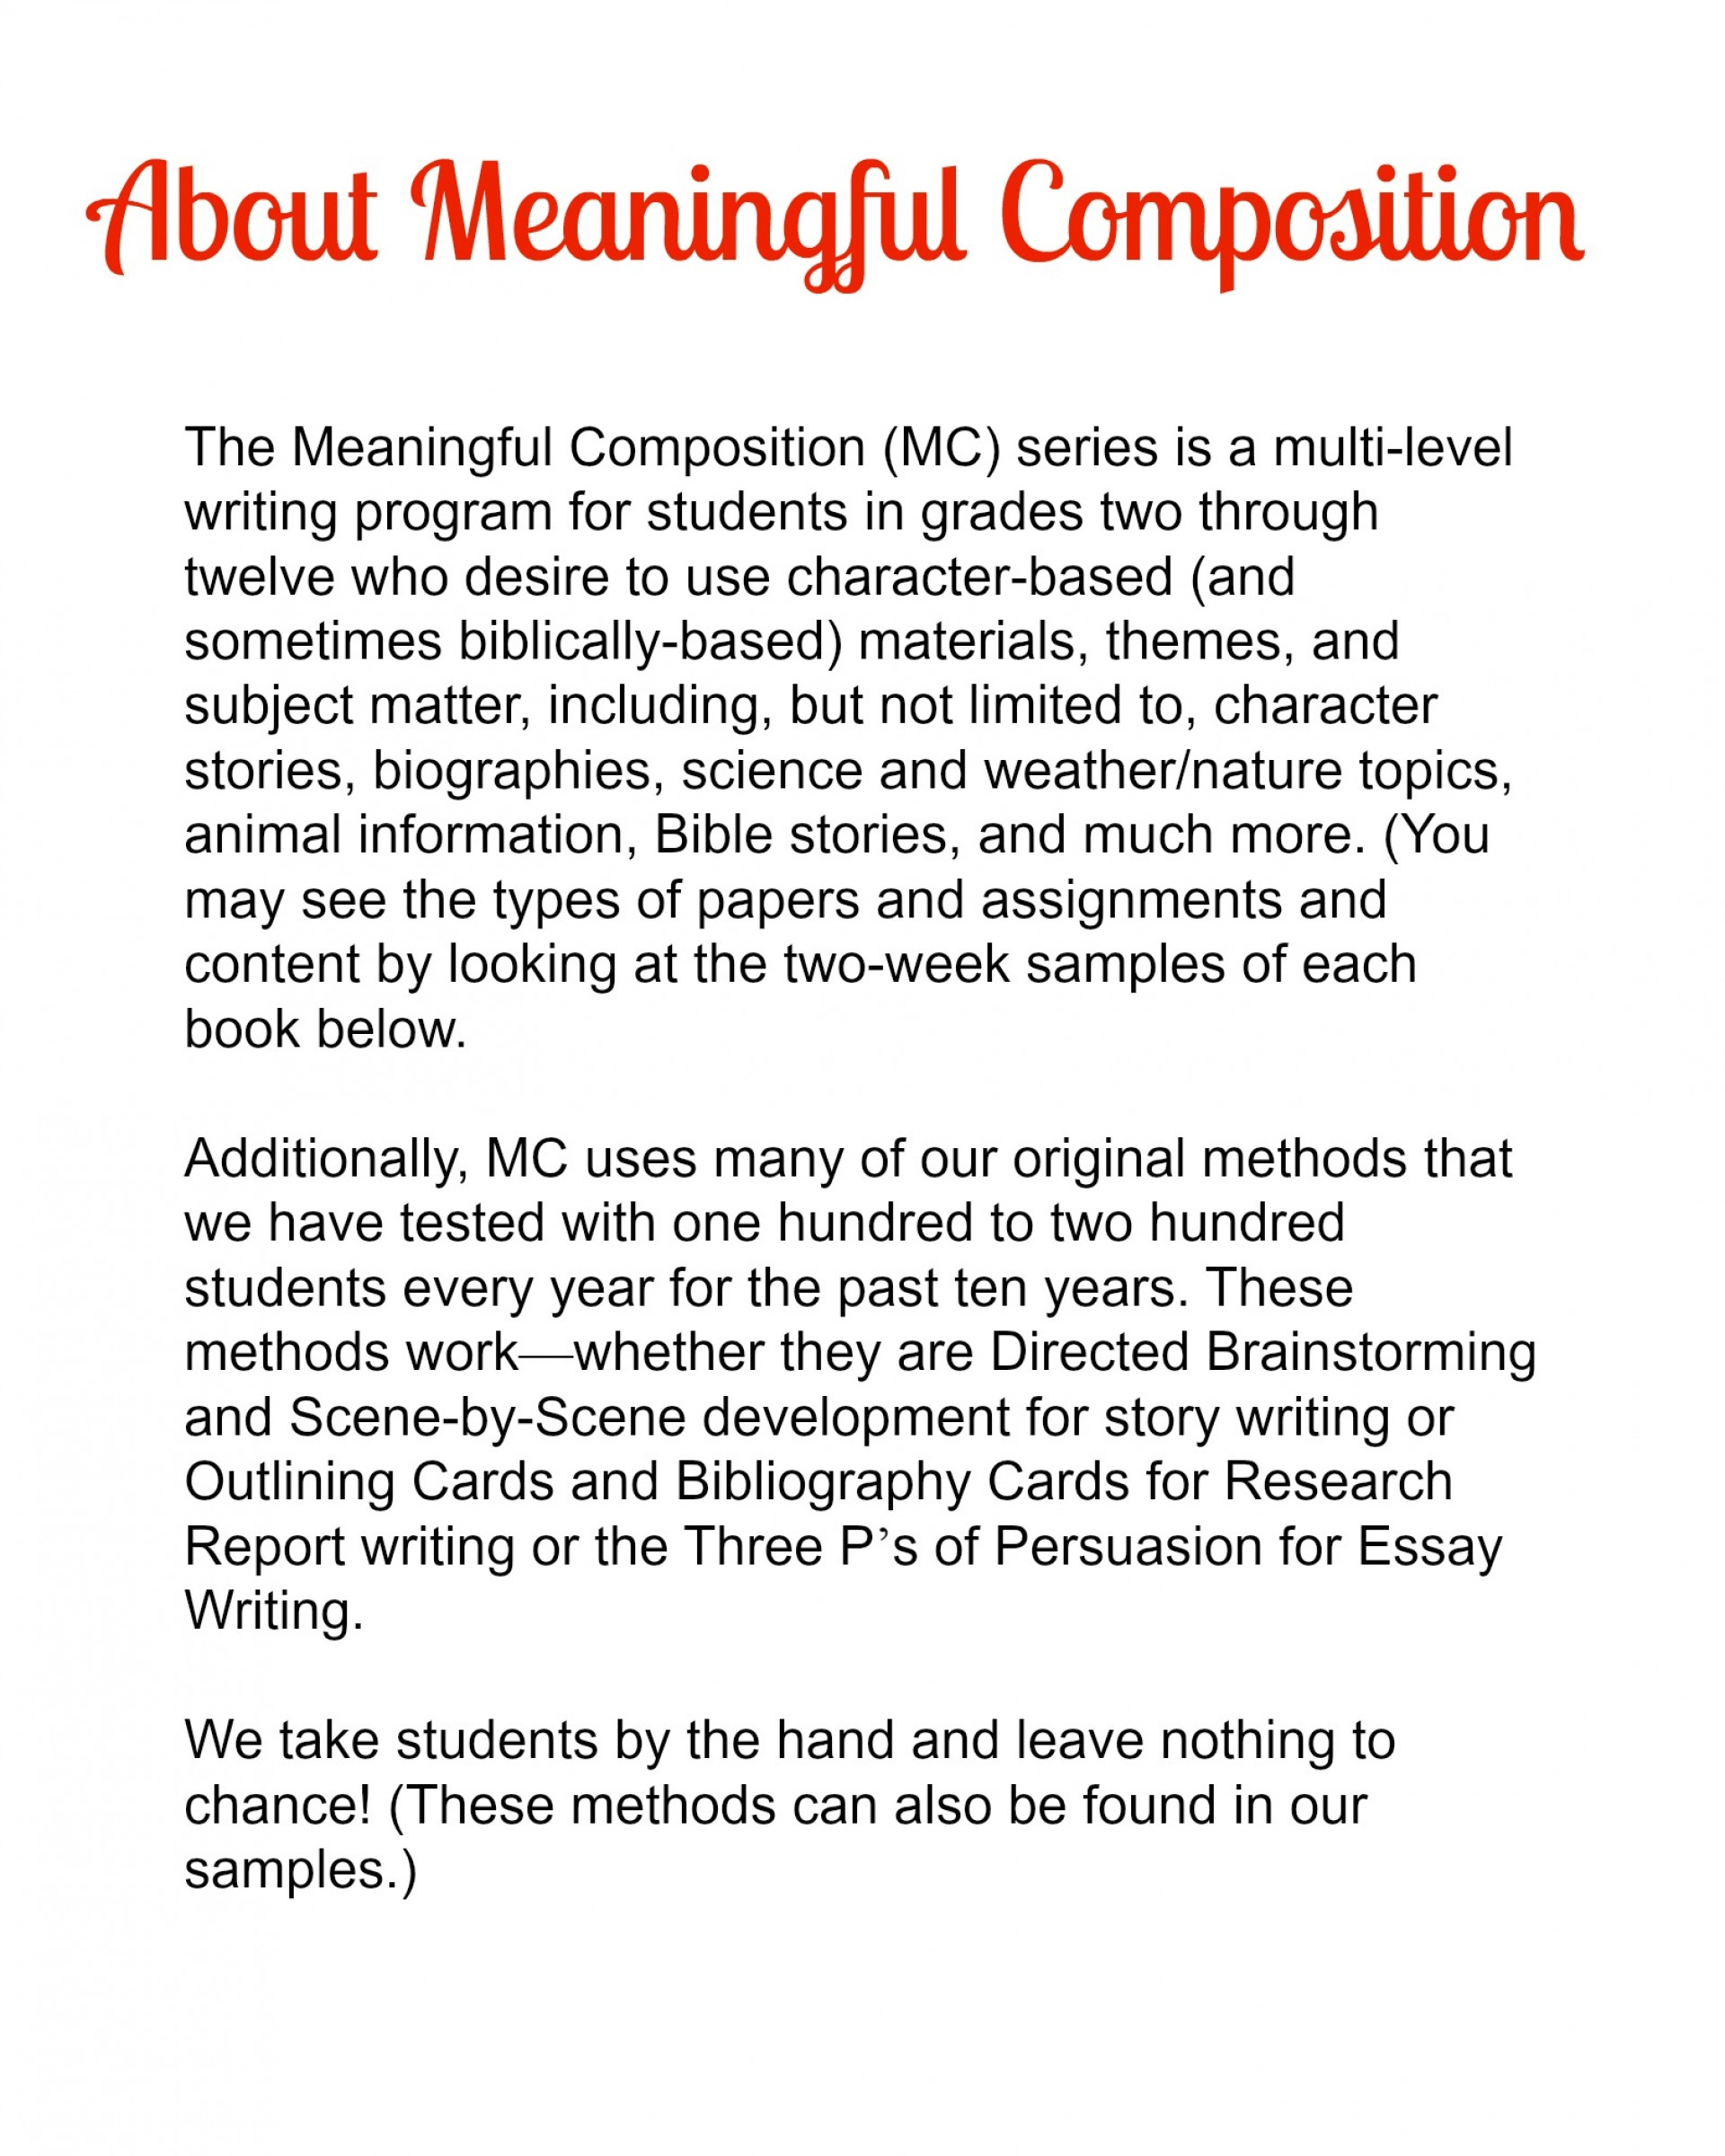 022 Examples Of Persuasive Essays Expository Essay Introductions Creative Writing Course Paragraph On Bullying About Meaningful Compos Cyber How To Prevent Five Excellent 5th Grade Written By Graders Example Argumentative-persuasive Topics 1920